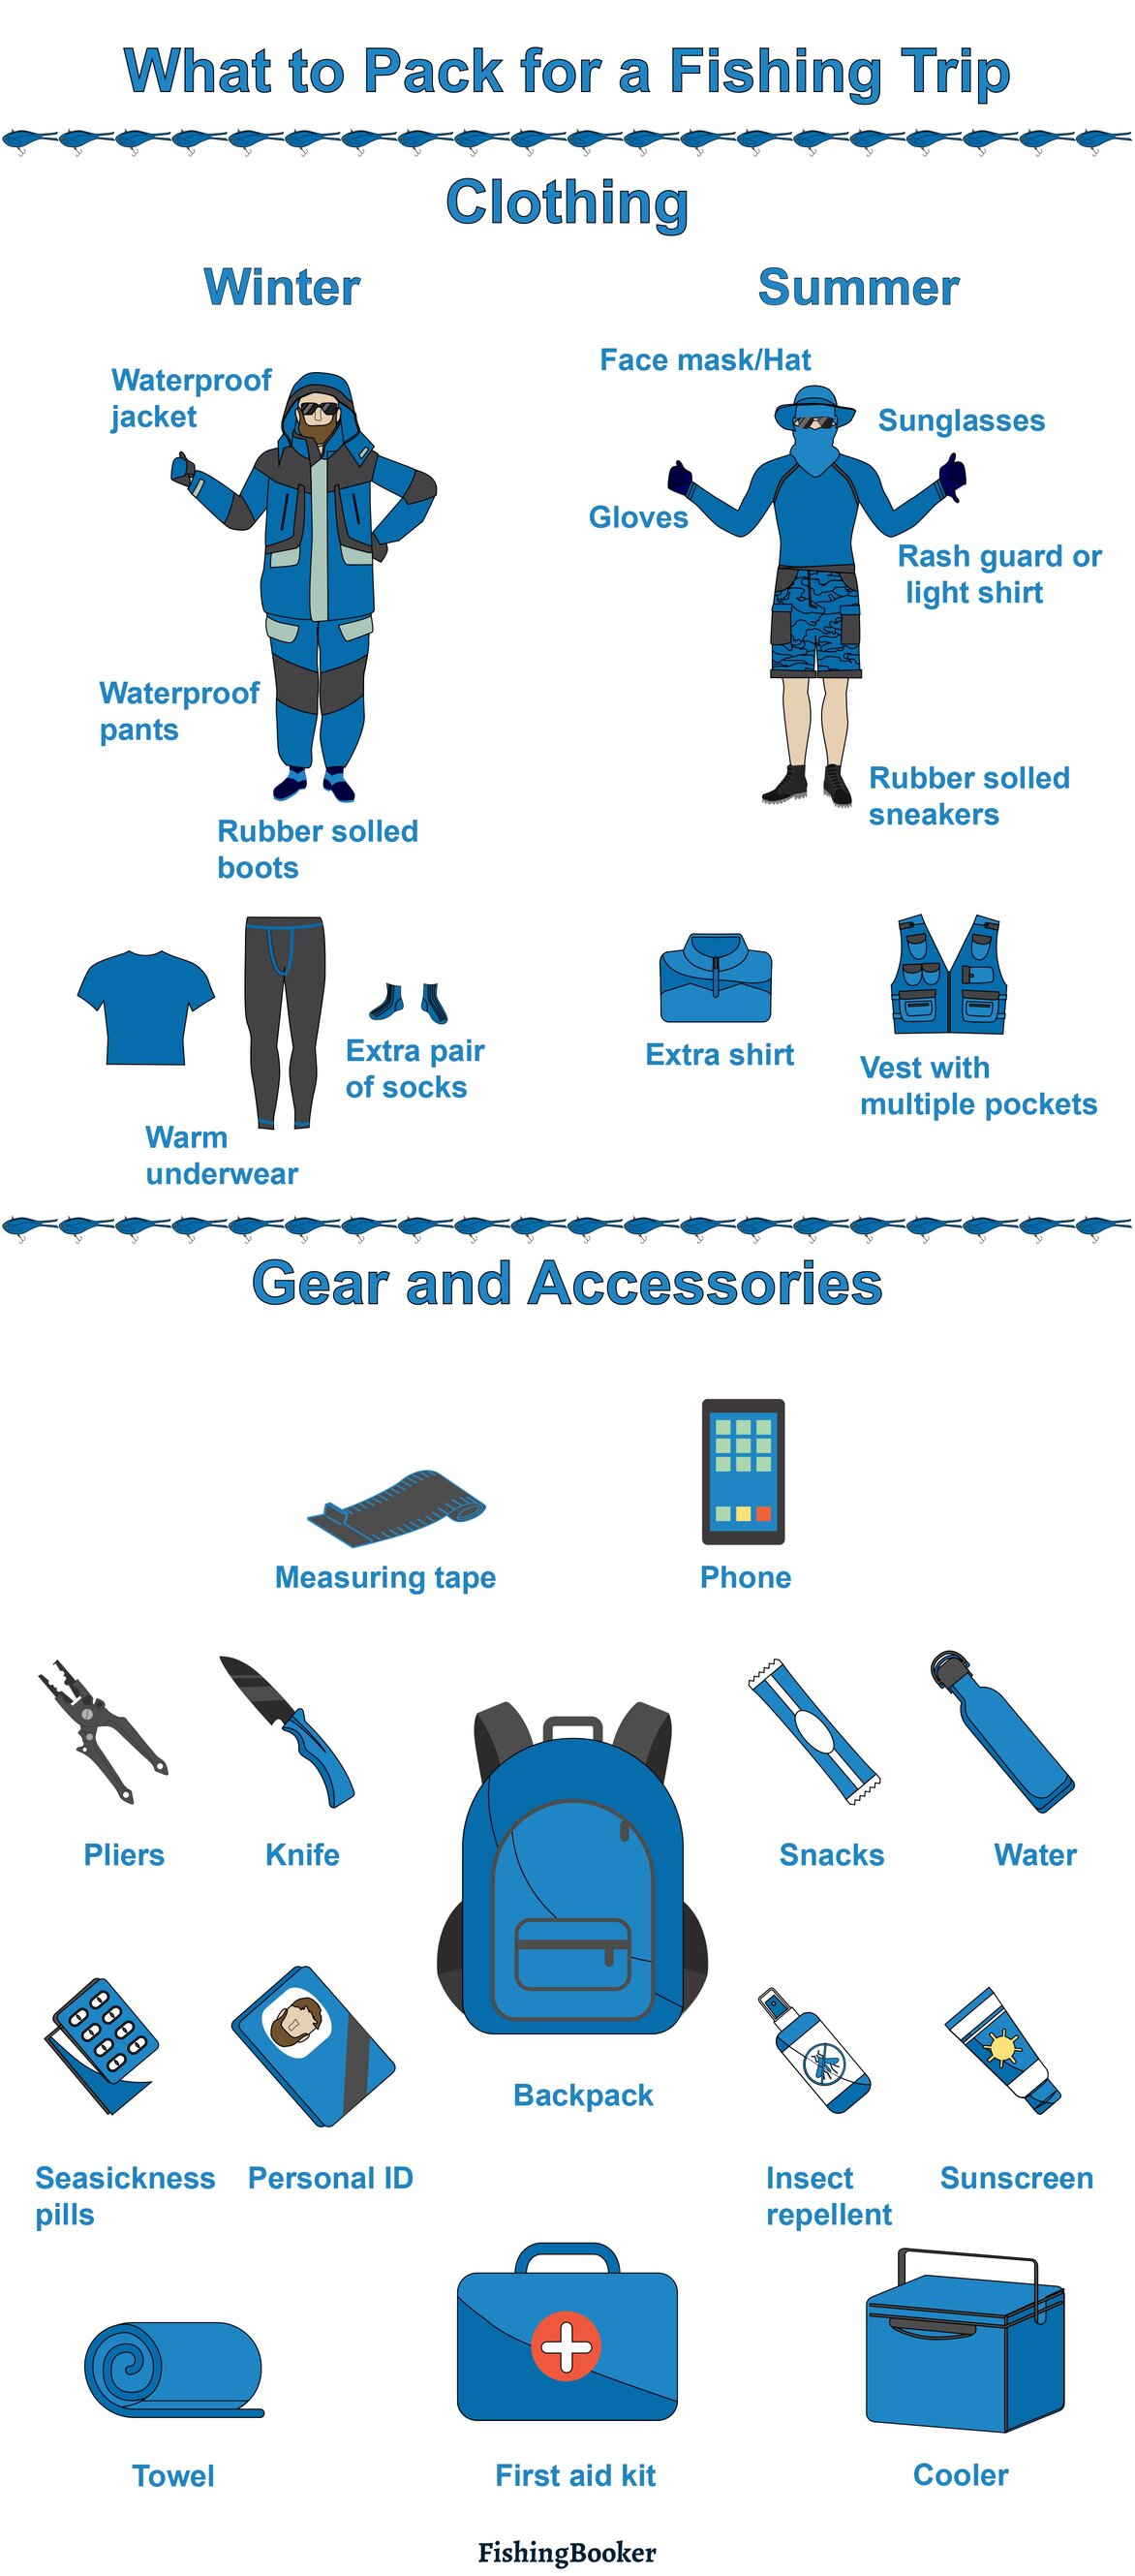 an infographic showing what to pack for a charter fishing trip